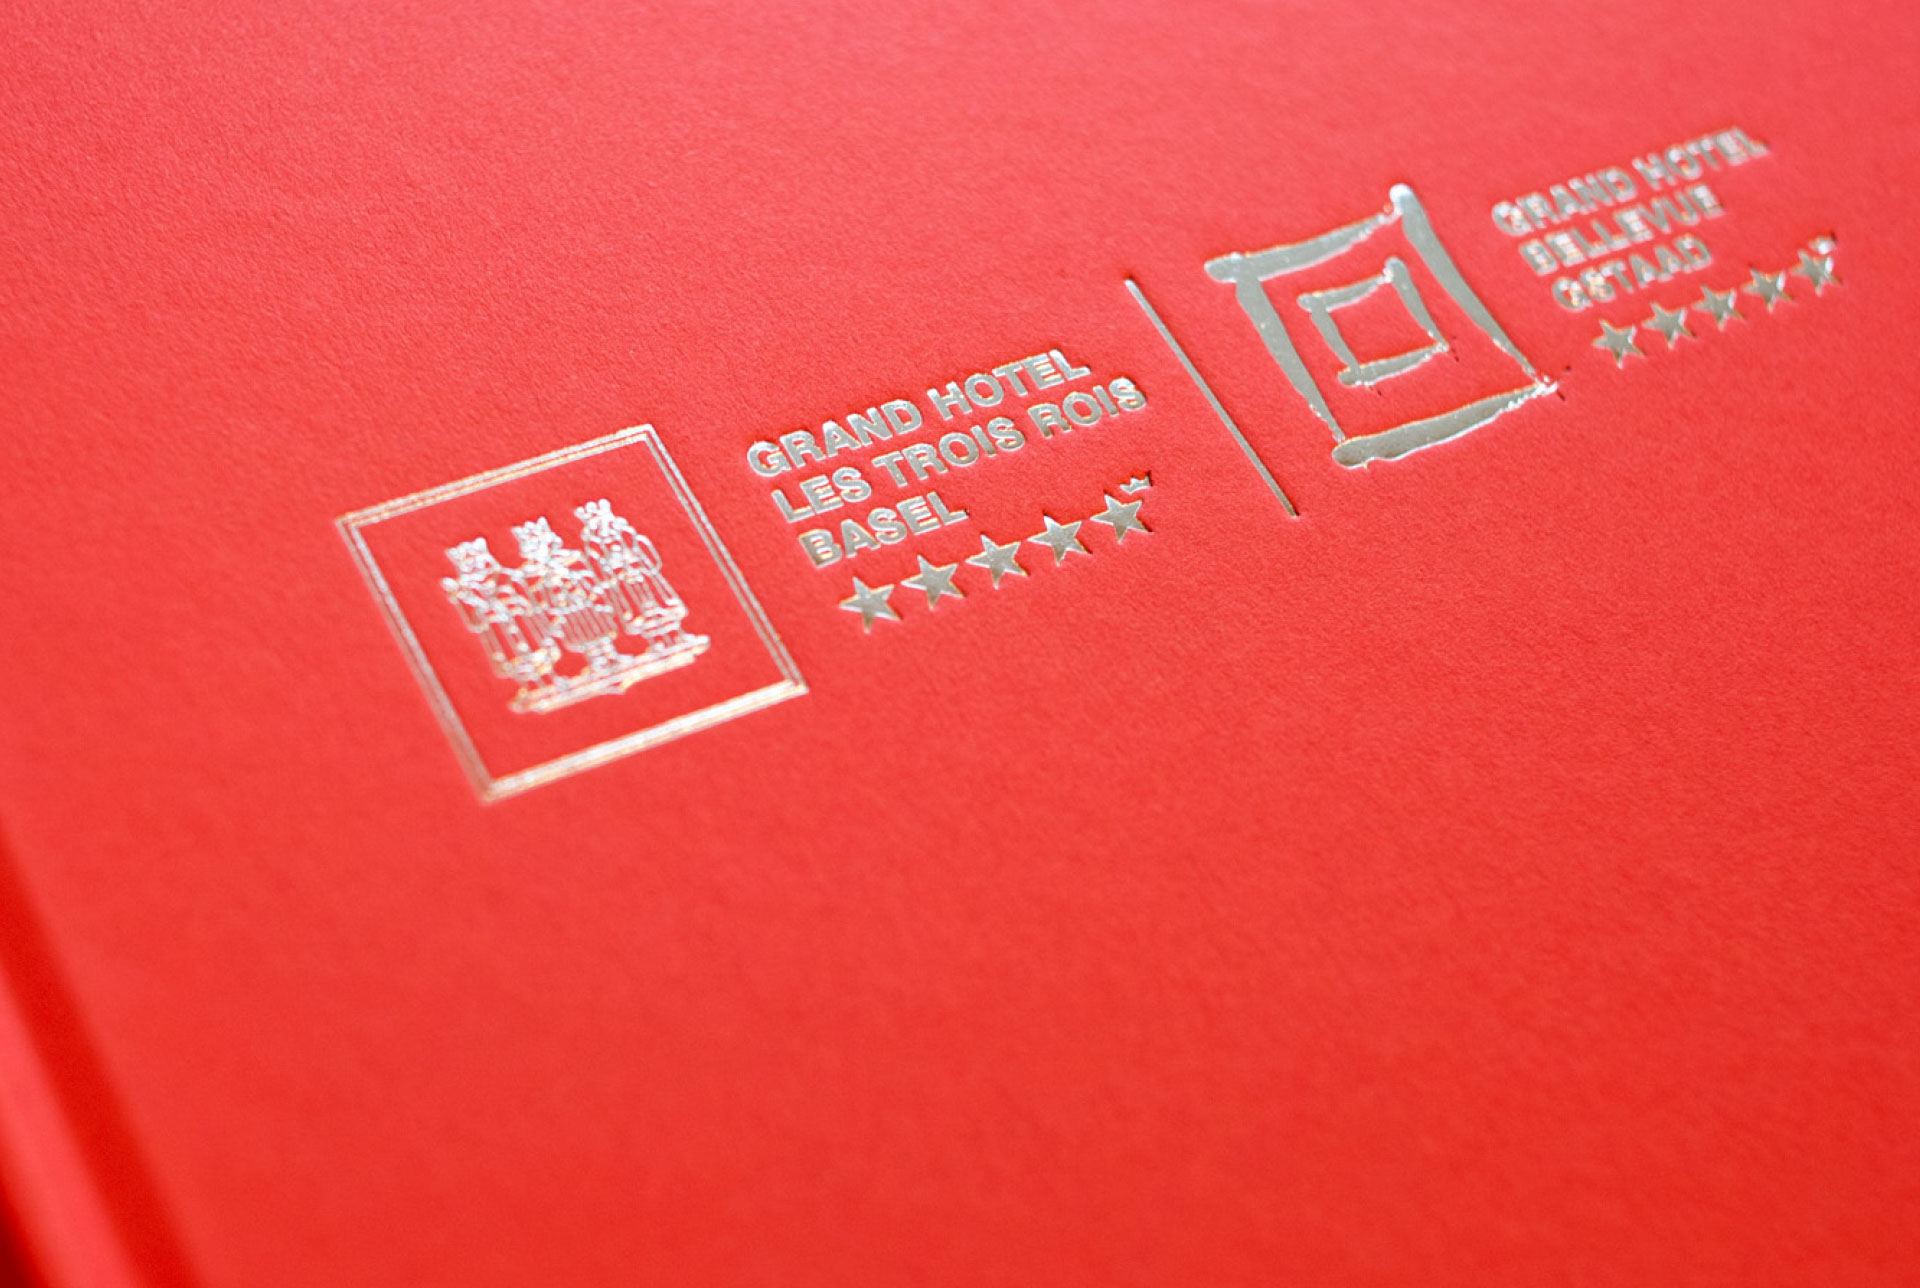 grand-hotel-investment-document-front-cover.jpg